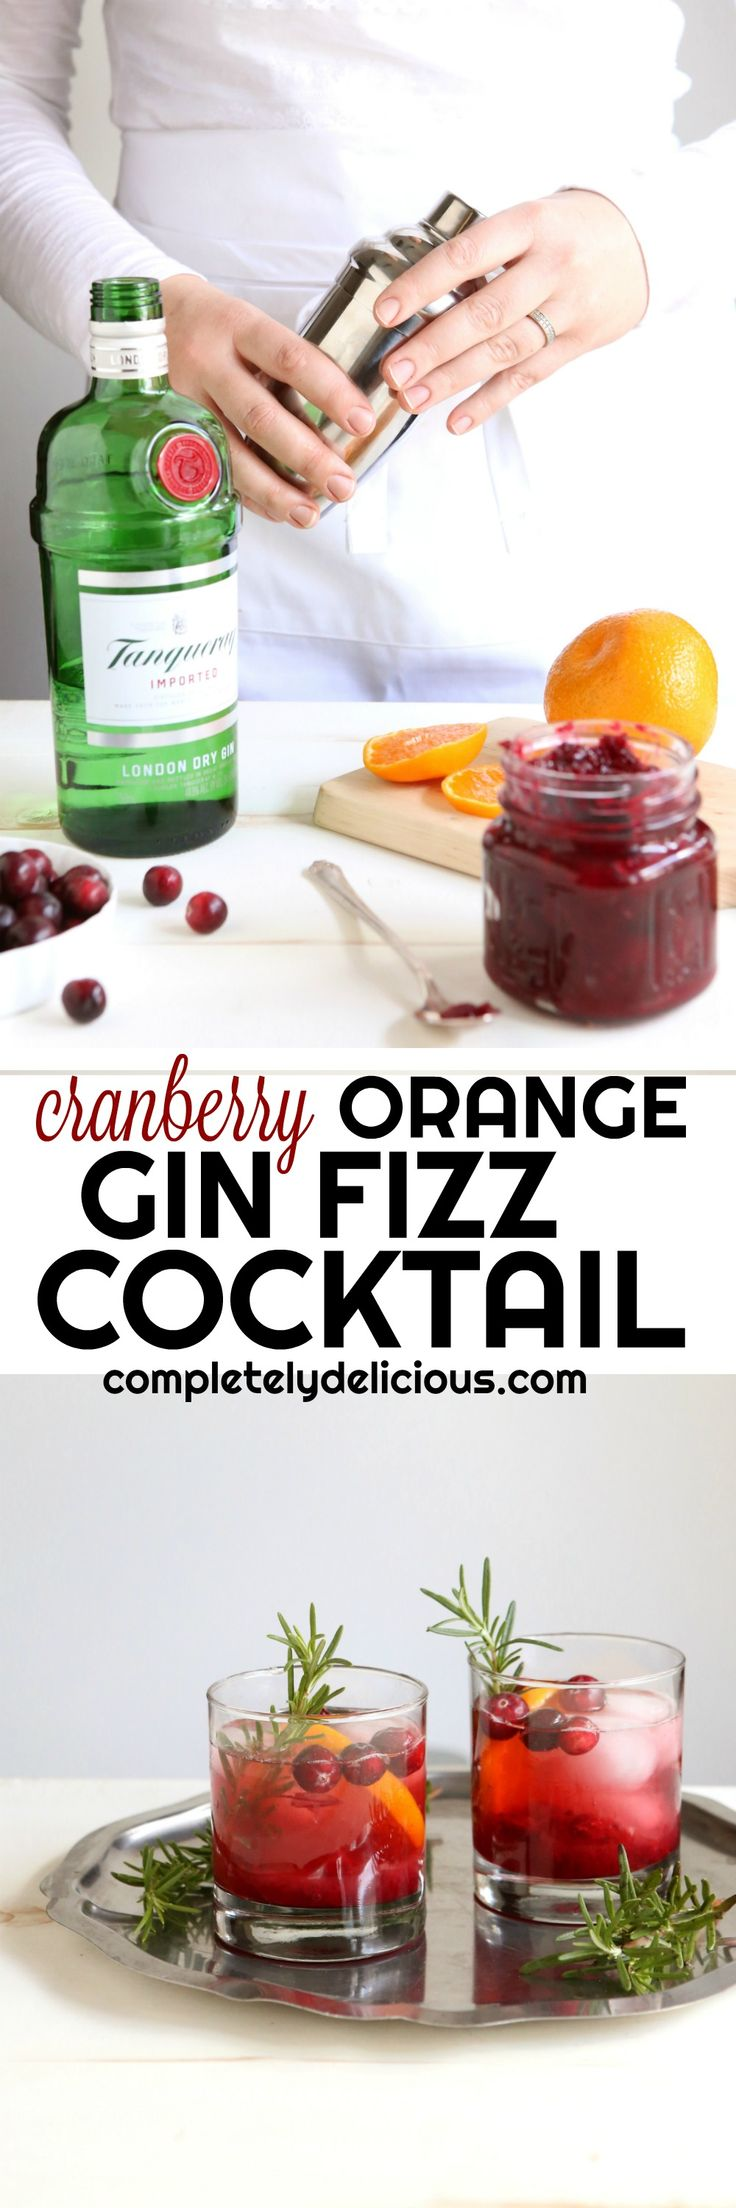 Cranberry Fizz Cocktail Recipe: Best 25+ Gin Fizz Cocktail Ideas On Pinterest